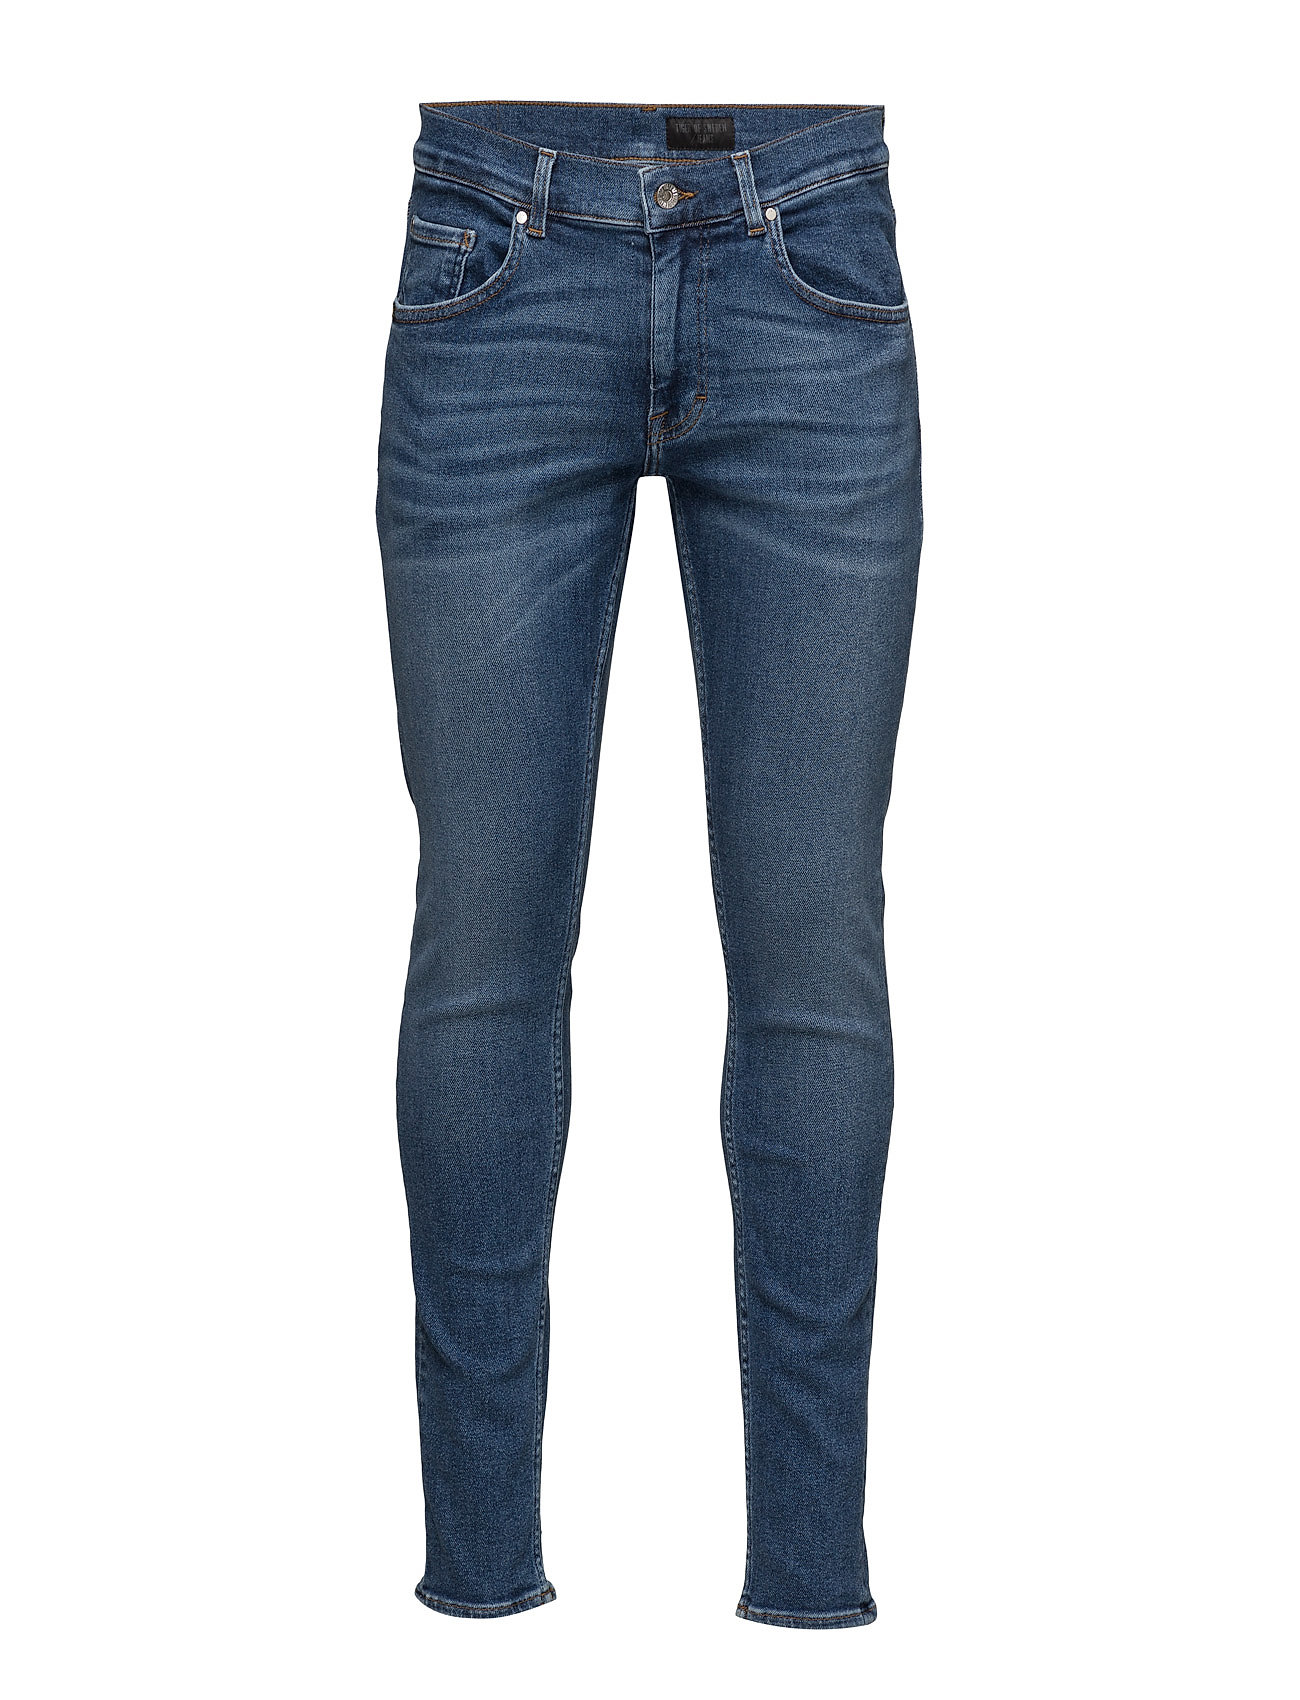 Slim Tiger of Sweden Jeans Skinny til Herrer i Medium Blå